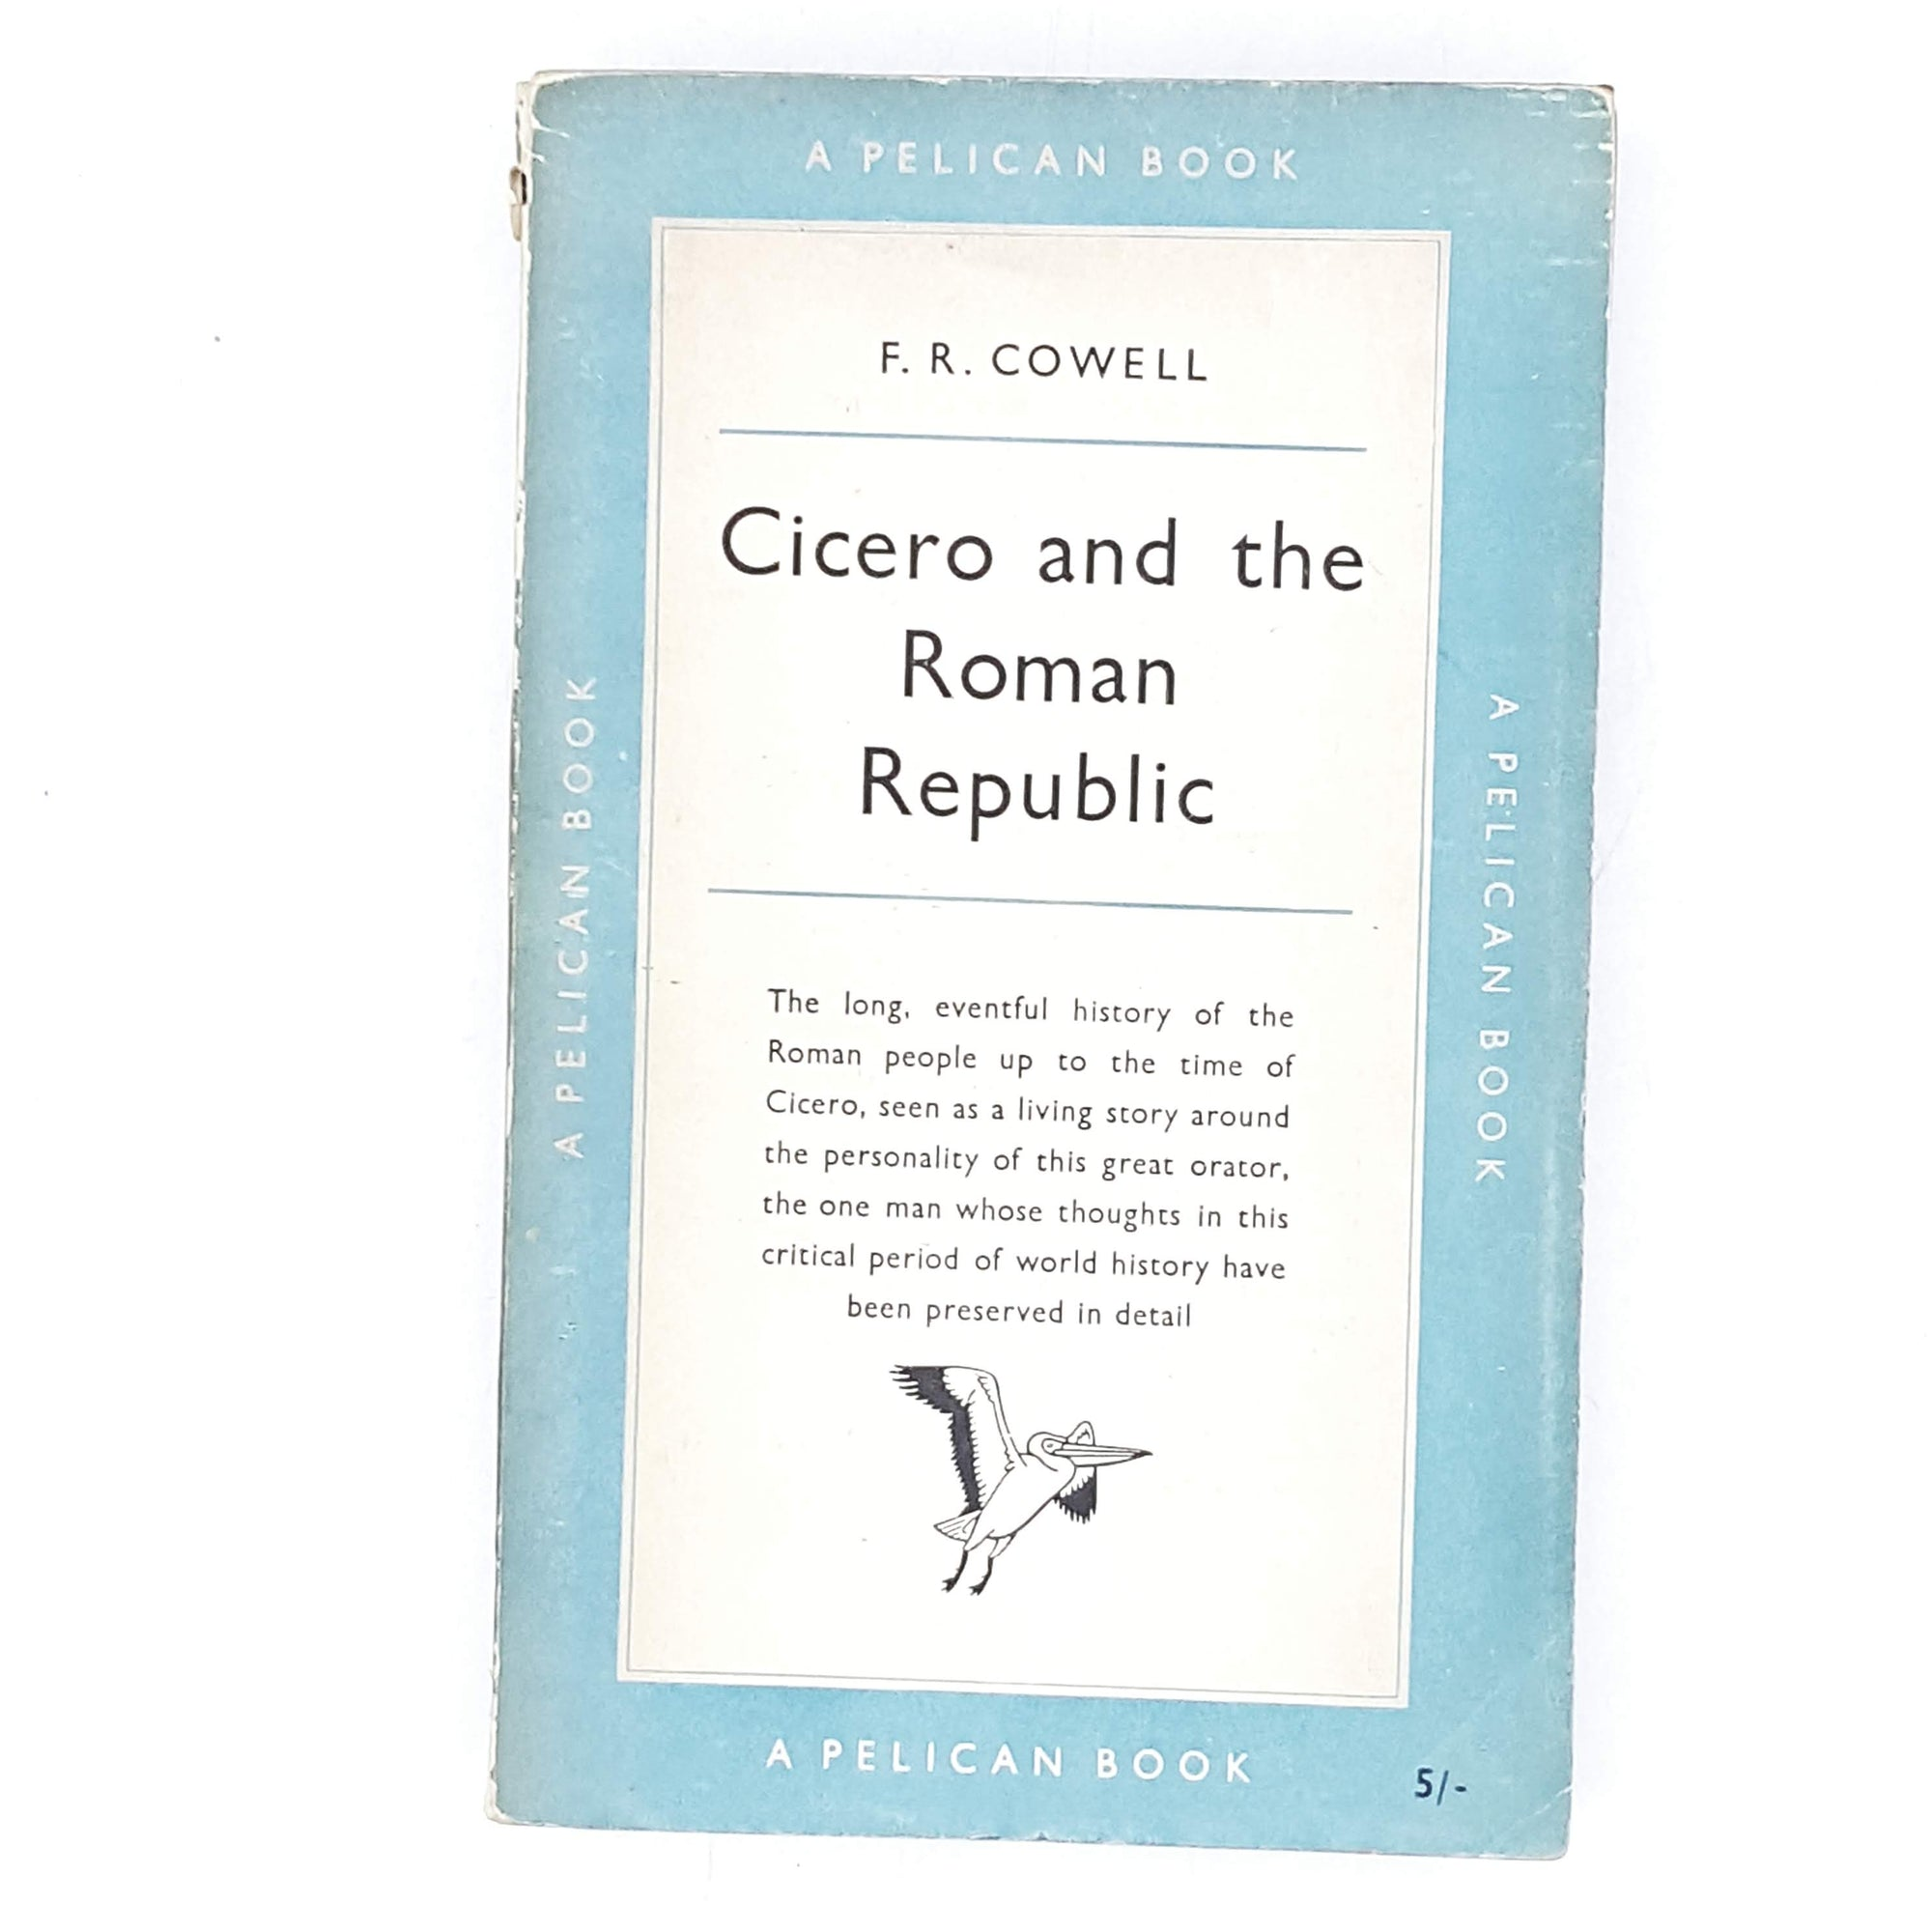 Vintage Pelican Cicero and the Roman Republic by F. R. Cowell 1956